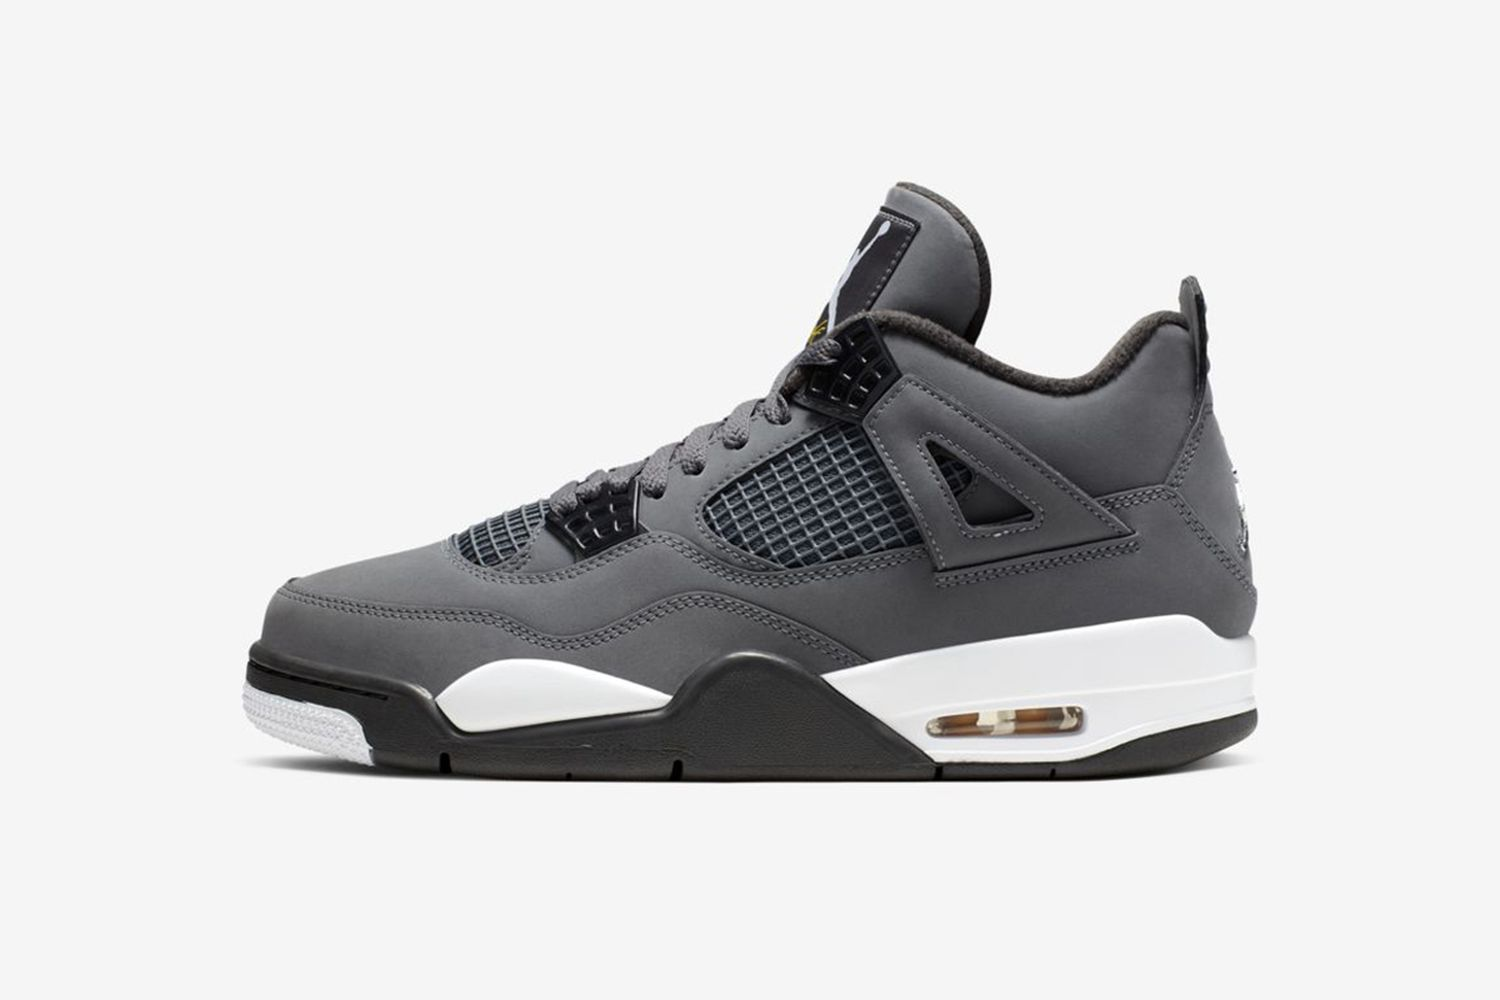 Air Jordan 4 'Cool Grey'